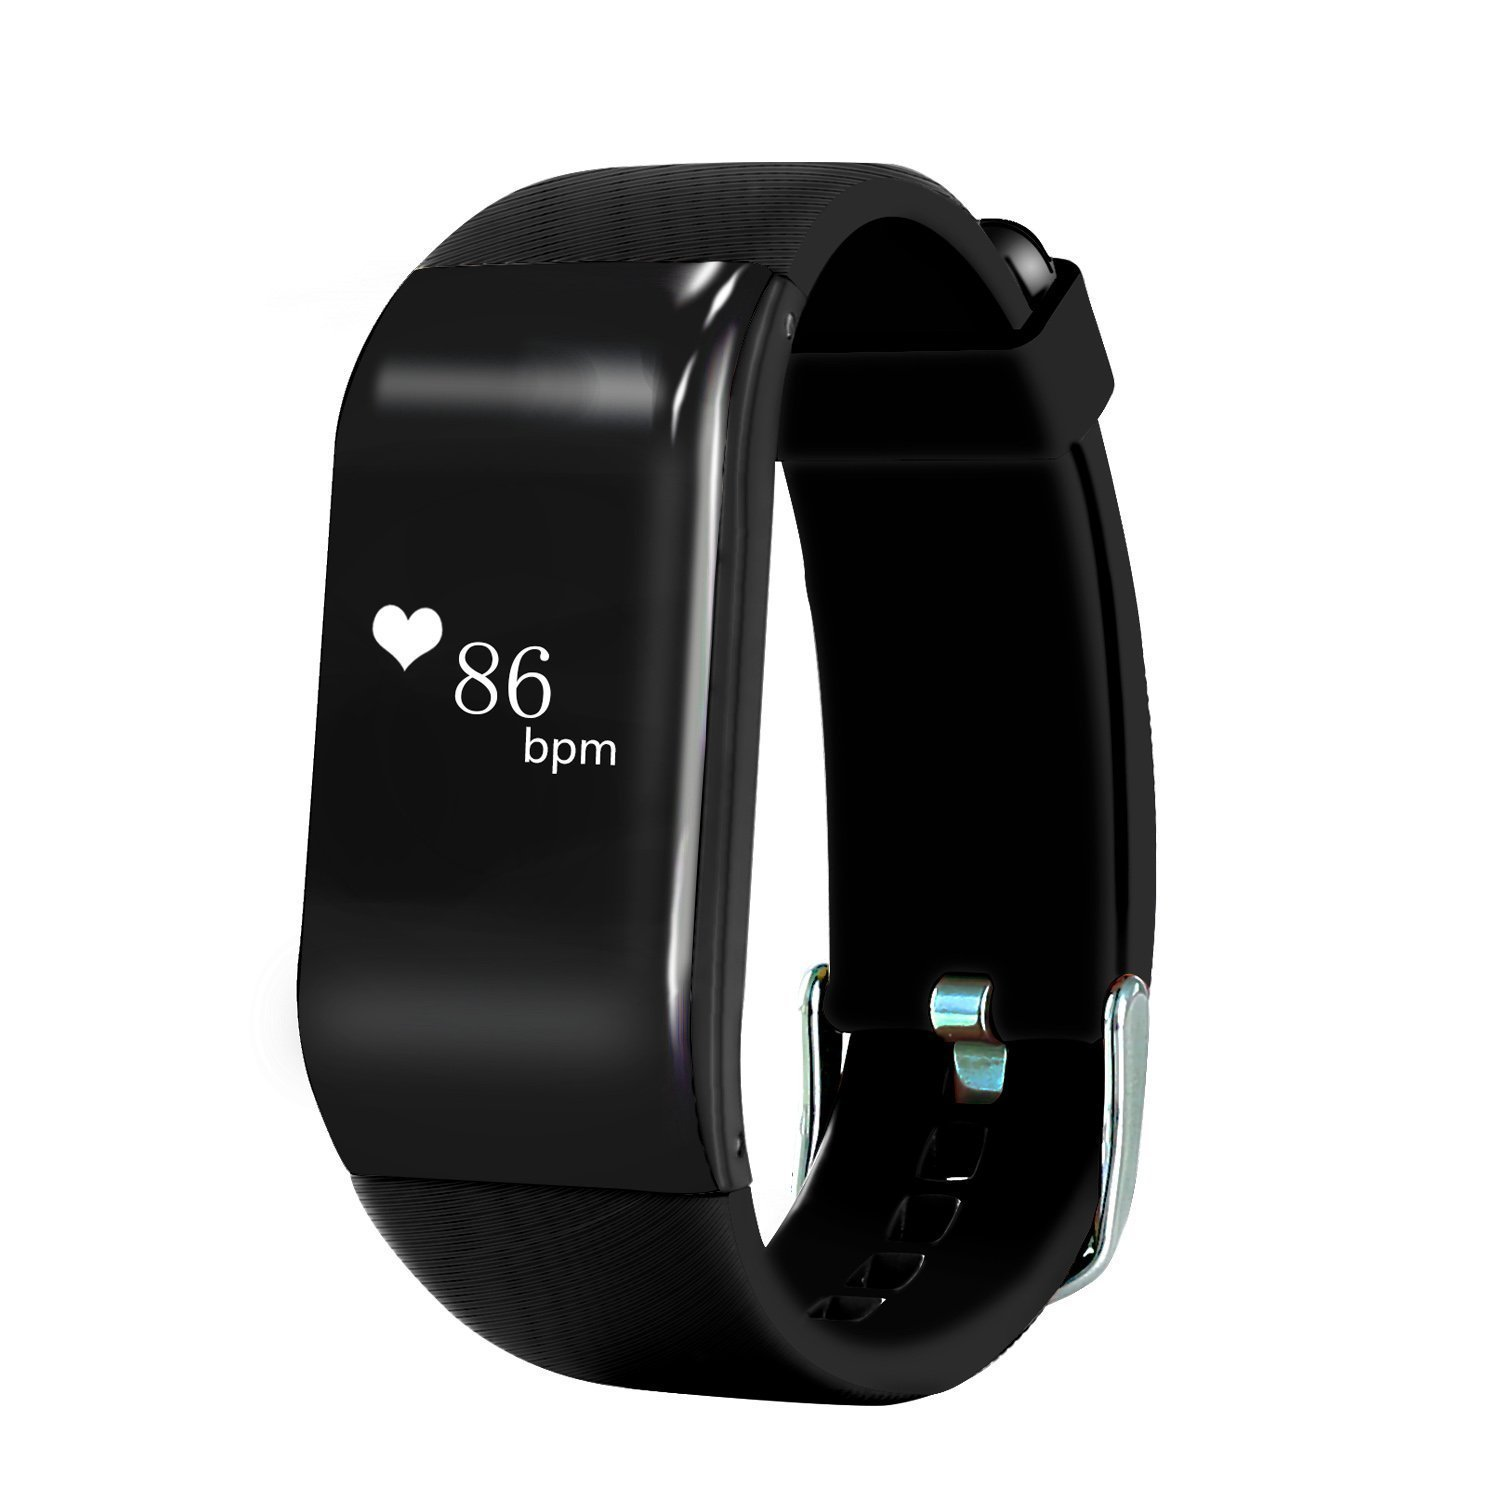 IP67 Bluetooth 4.0 Smart Heart Rate Monitor Bracelet Band Wristband Fitness Tracker Call Reminder for Android iOS vs Mi Band 2(China (Mainland))